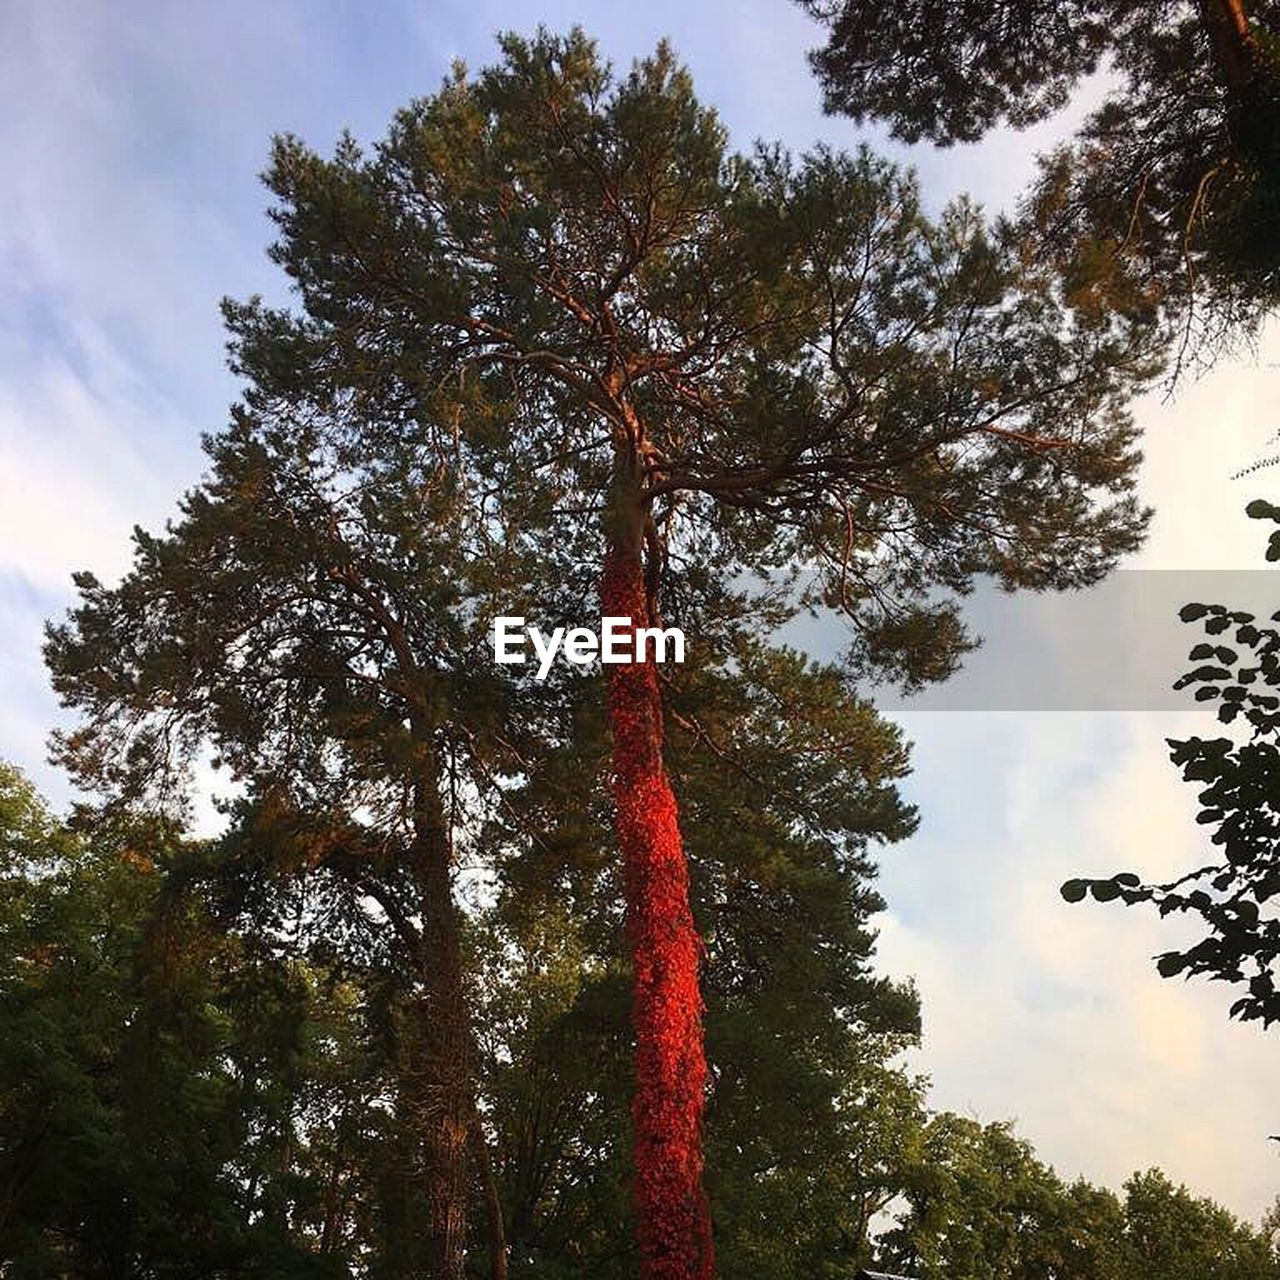 tree, low angle view, growth, outdoors, day, sky, tree trunk, nature, forest, no people, red, leaf, beauty in nature, branch, tree area